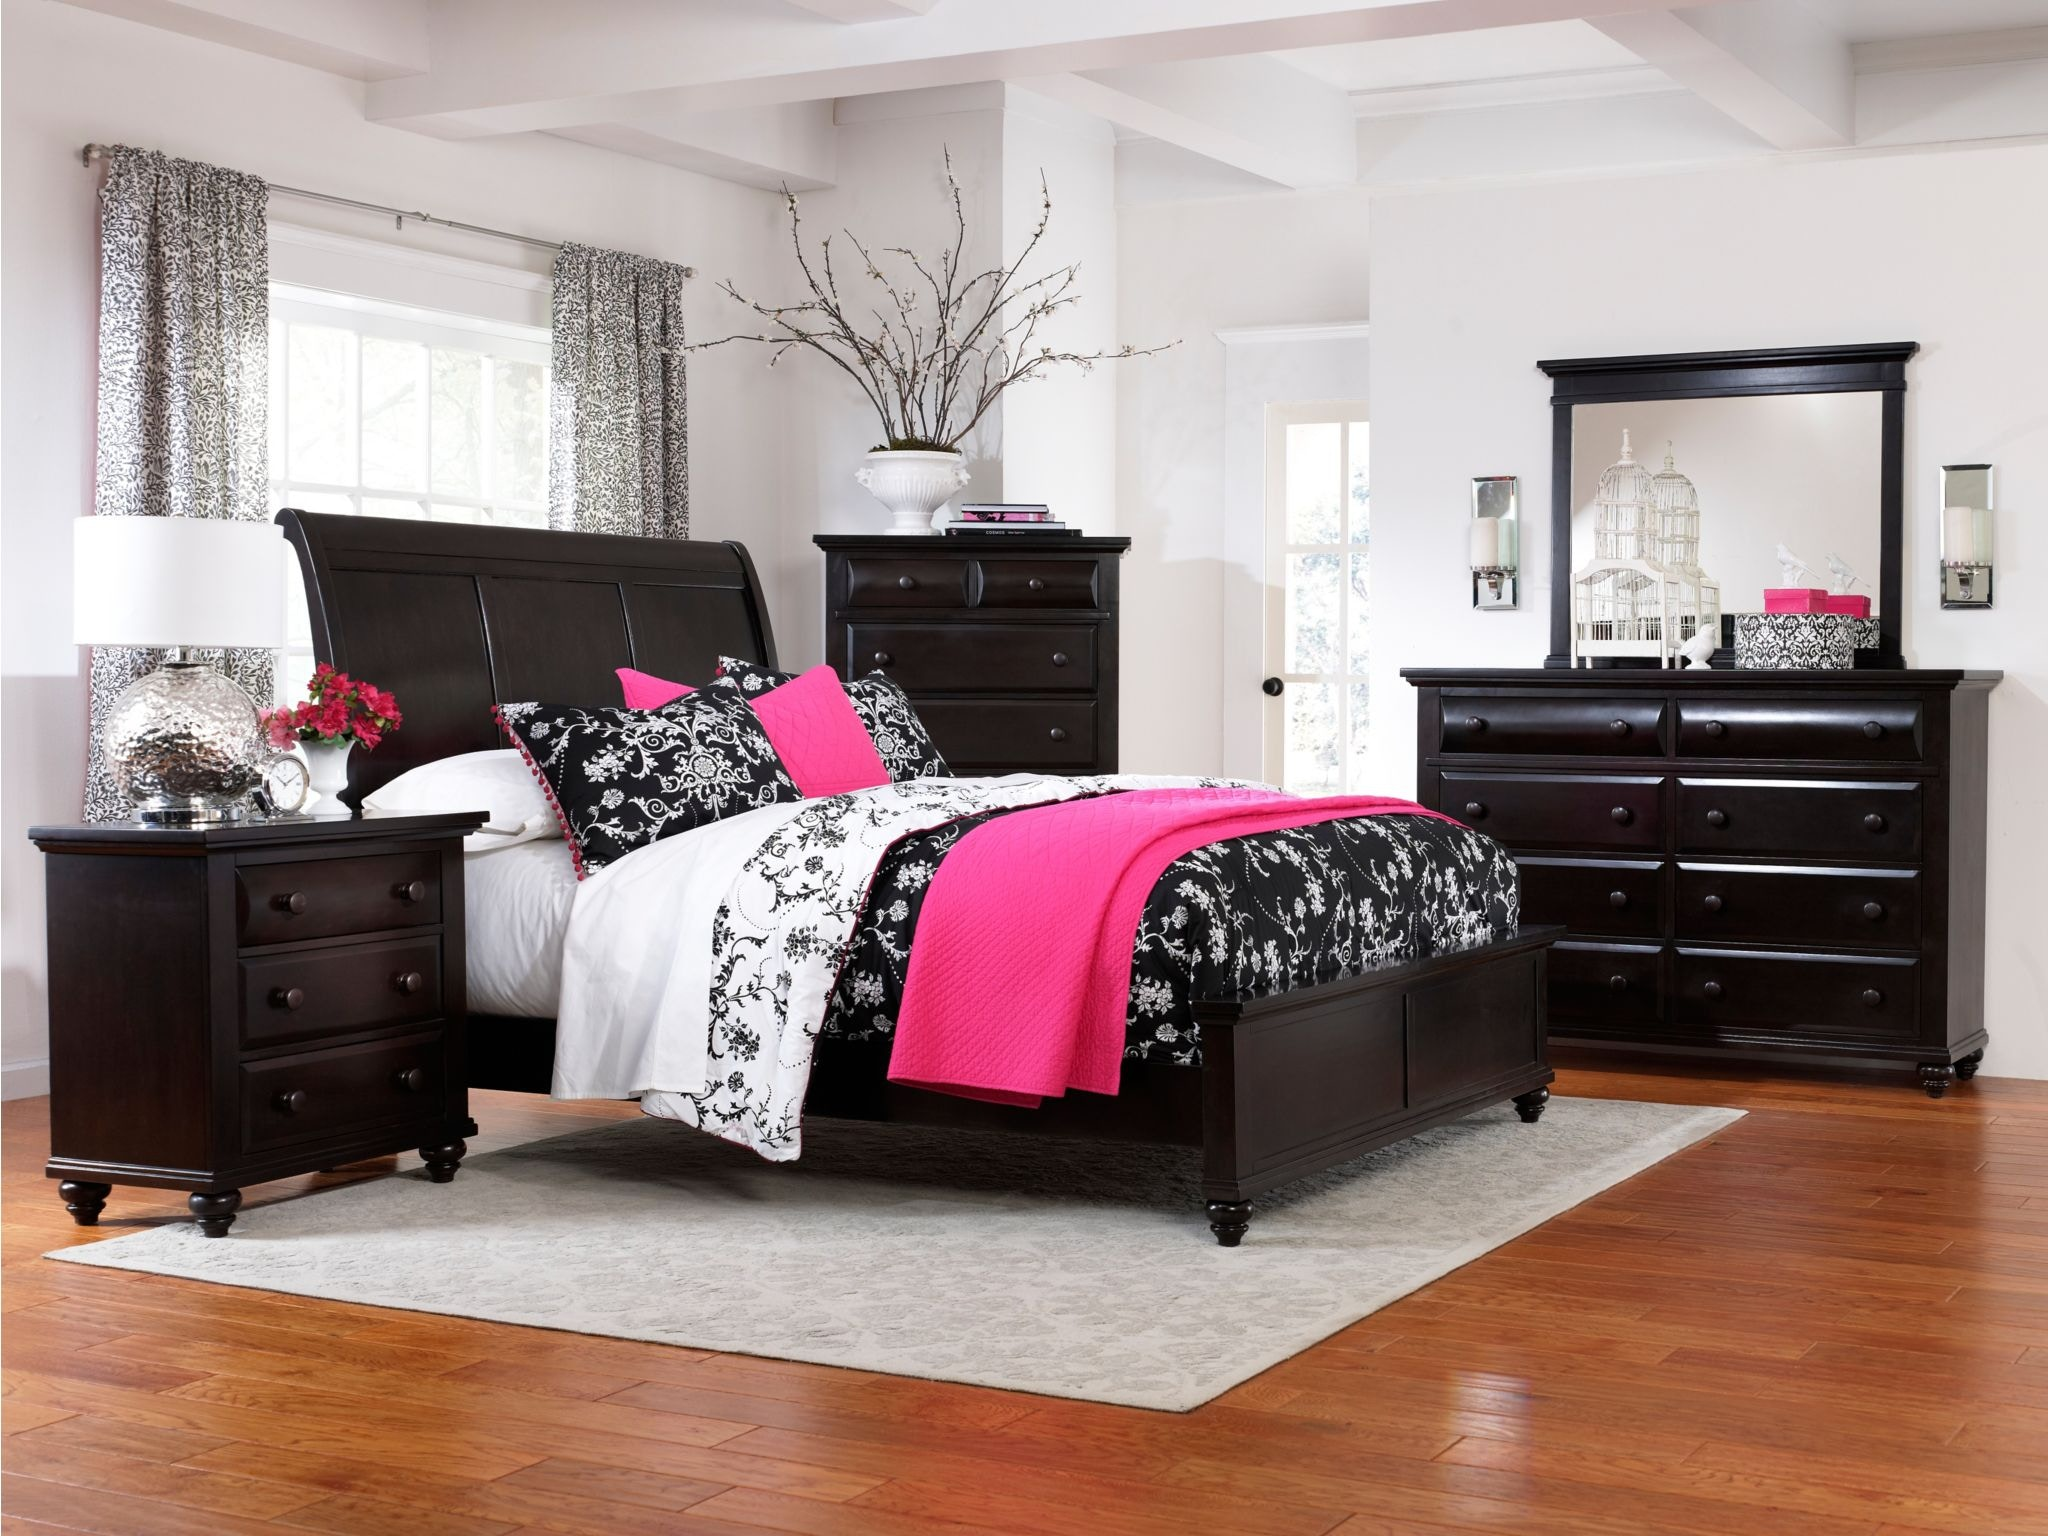 Broyhill Bedroom Farnsworth Sleigh Headboard King